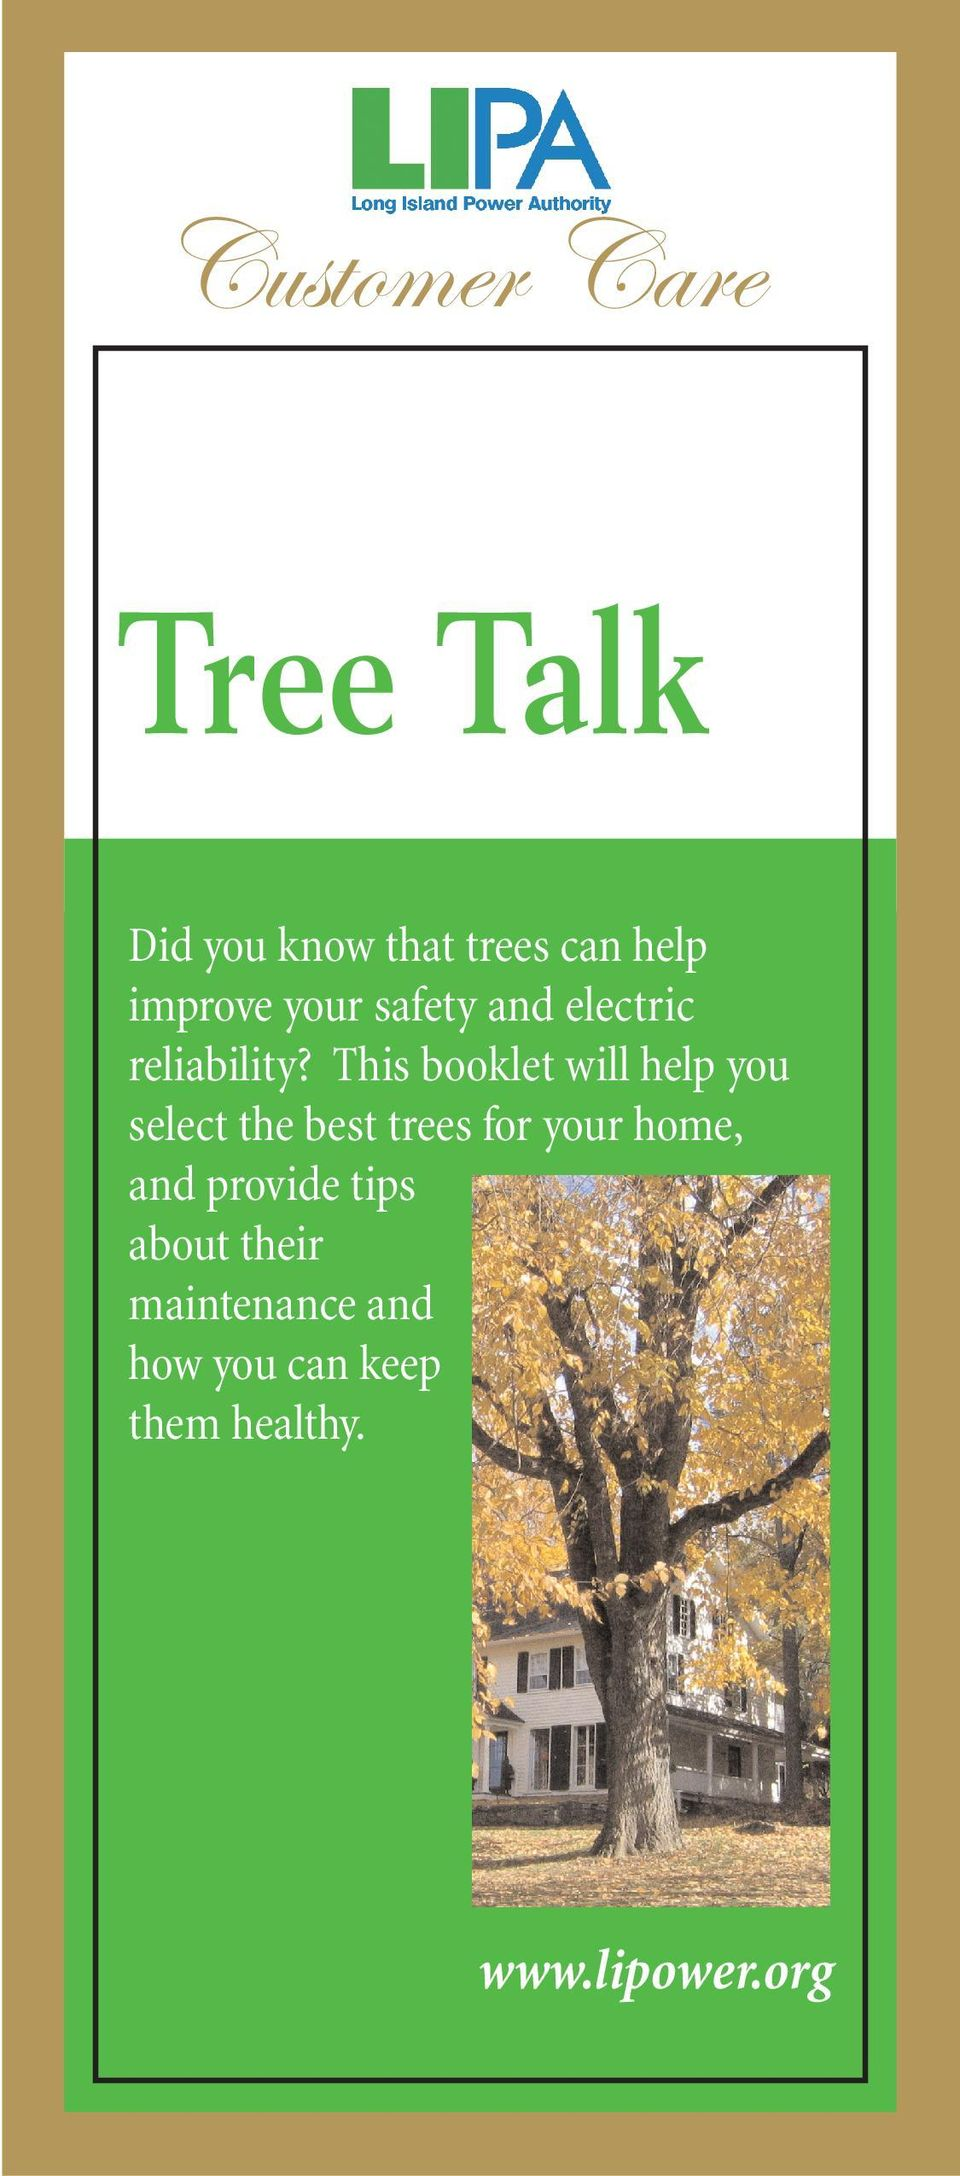 This booklet will help you select the best trees for your home,